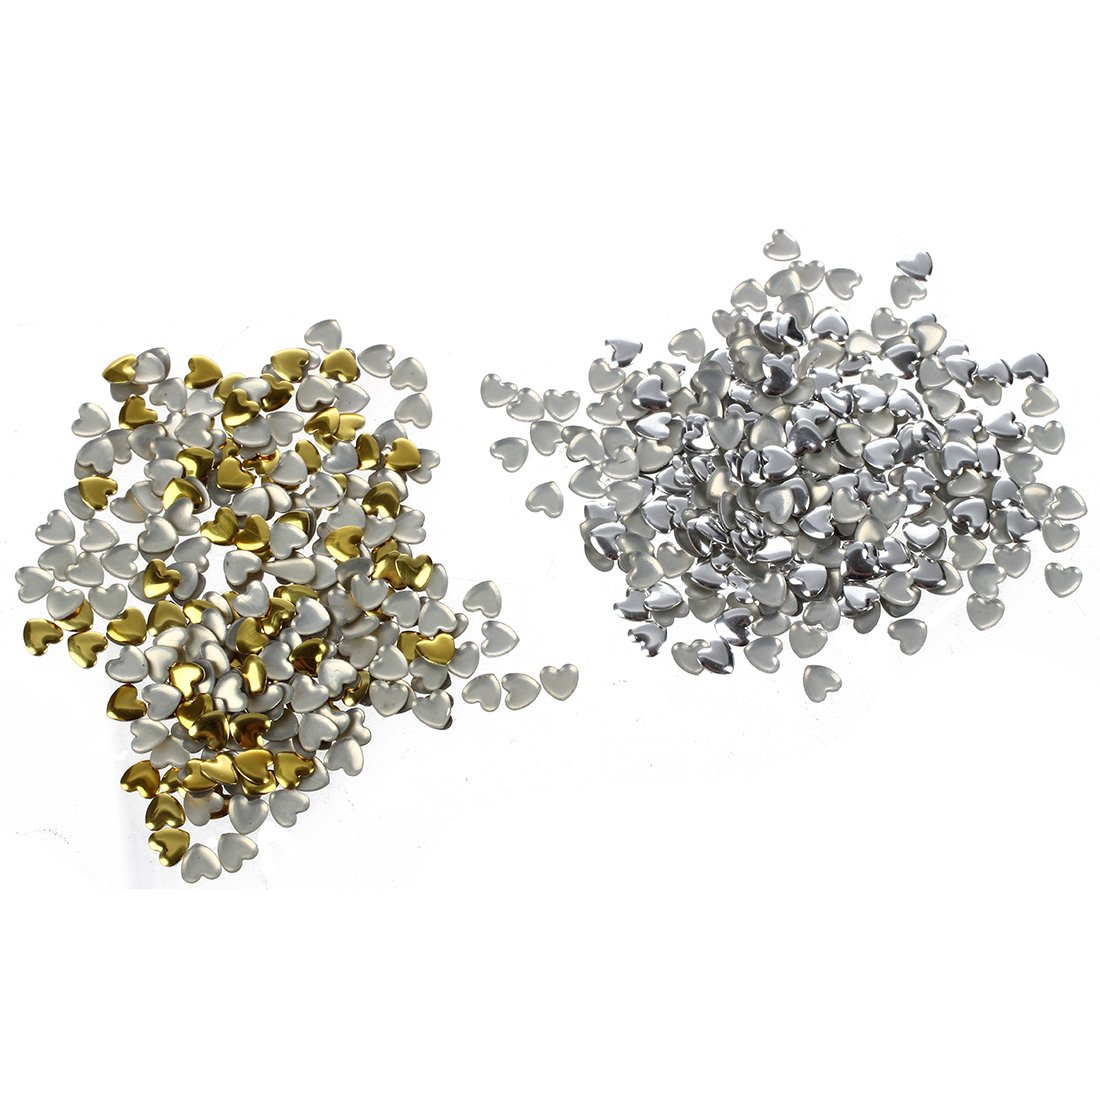 SODIAL(R) Nail Art 250 Pieces Gold & Silver 5mm HEART Metal Studs for Nails, Cellphones 013074